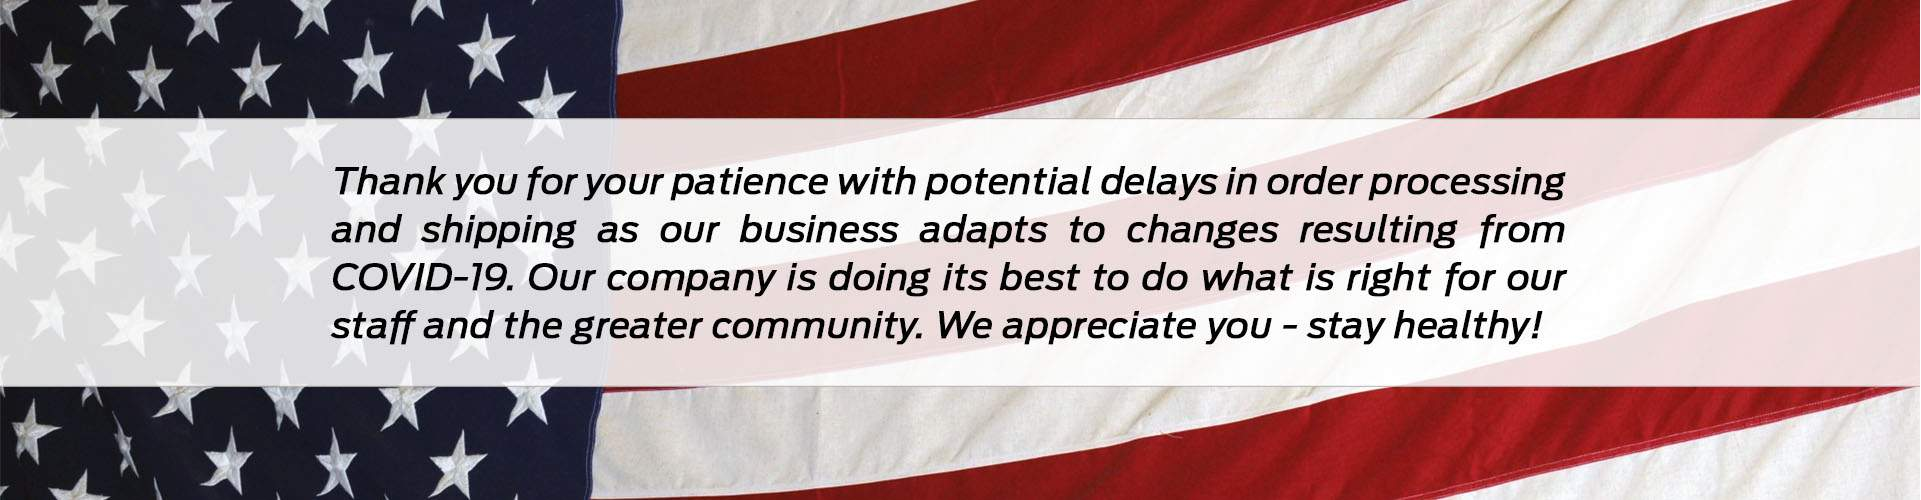 Thank you for your patience with potential delays in order processing and shipping as our business adapts to changes resulting from COVID-19. Our company is doing its best to do what is right for our staff and the greater community. At this moment, our online parts store is still in operation and we are still shipping  - although, as stated, you may experience delays. We appreciate you - stay healthy!